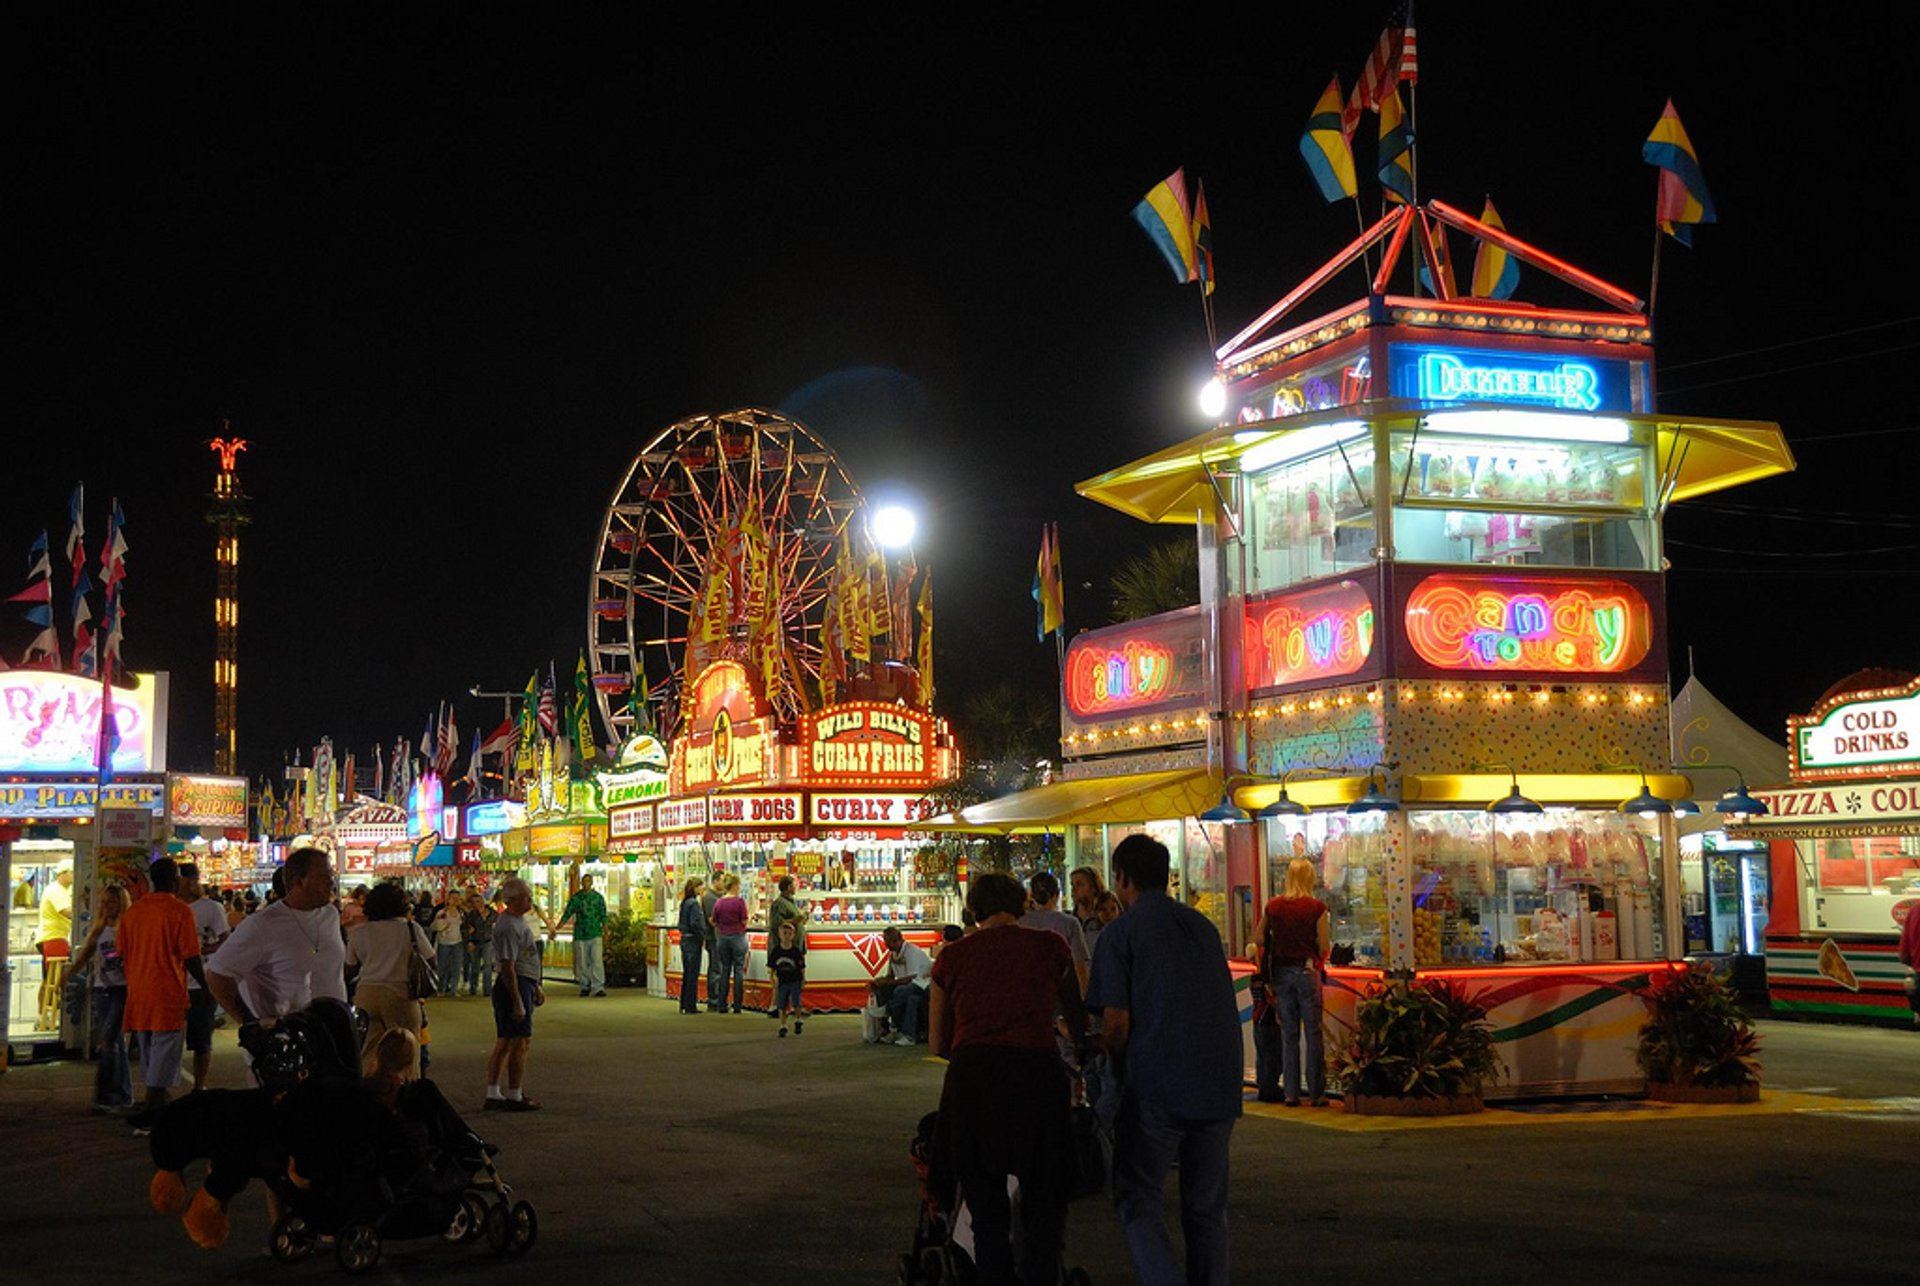 South Florida Fair 2021 - Dates & Map Within South Florida Fairgrounds Events 2021